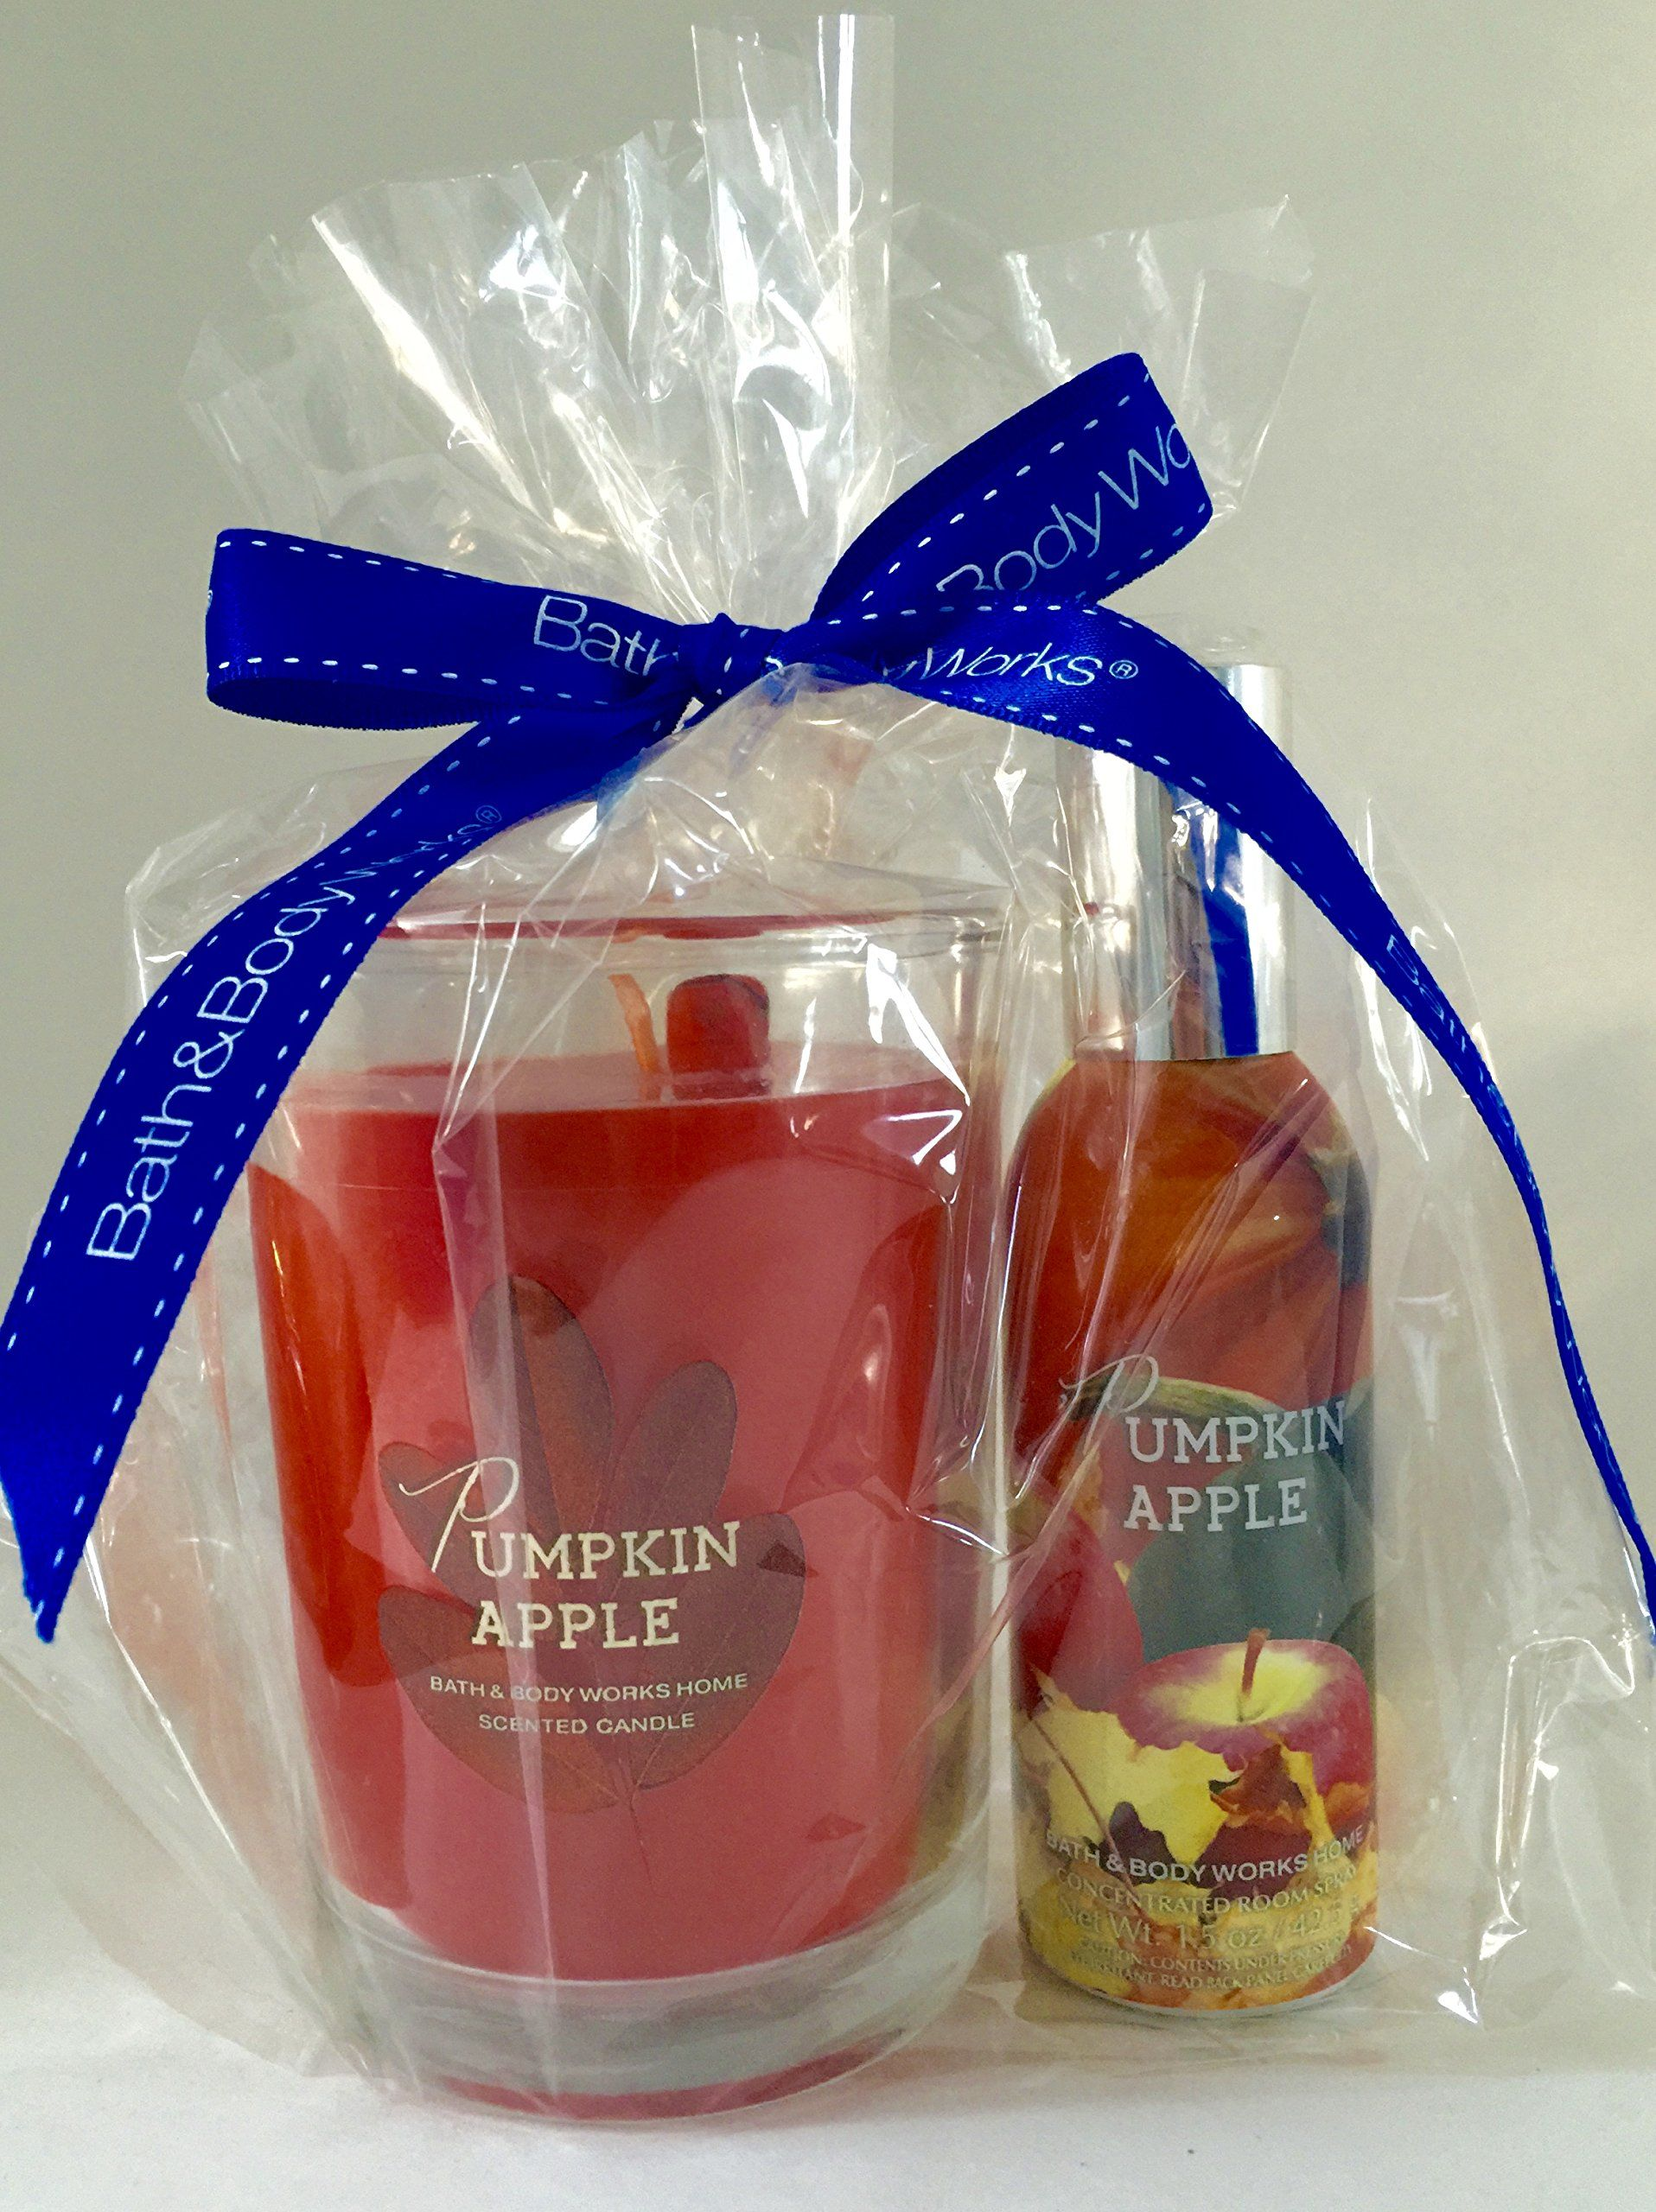 Bath and Body Works Pumpkin Apple Candle and Room Spray Gift Set & Bath and Body Works Pumpkin Apple Candle and Room Spray Gift Set ...